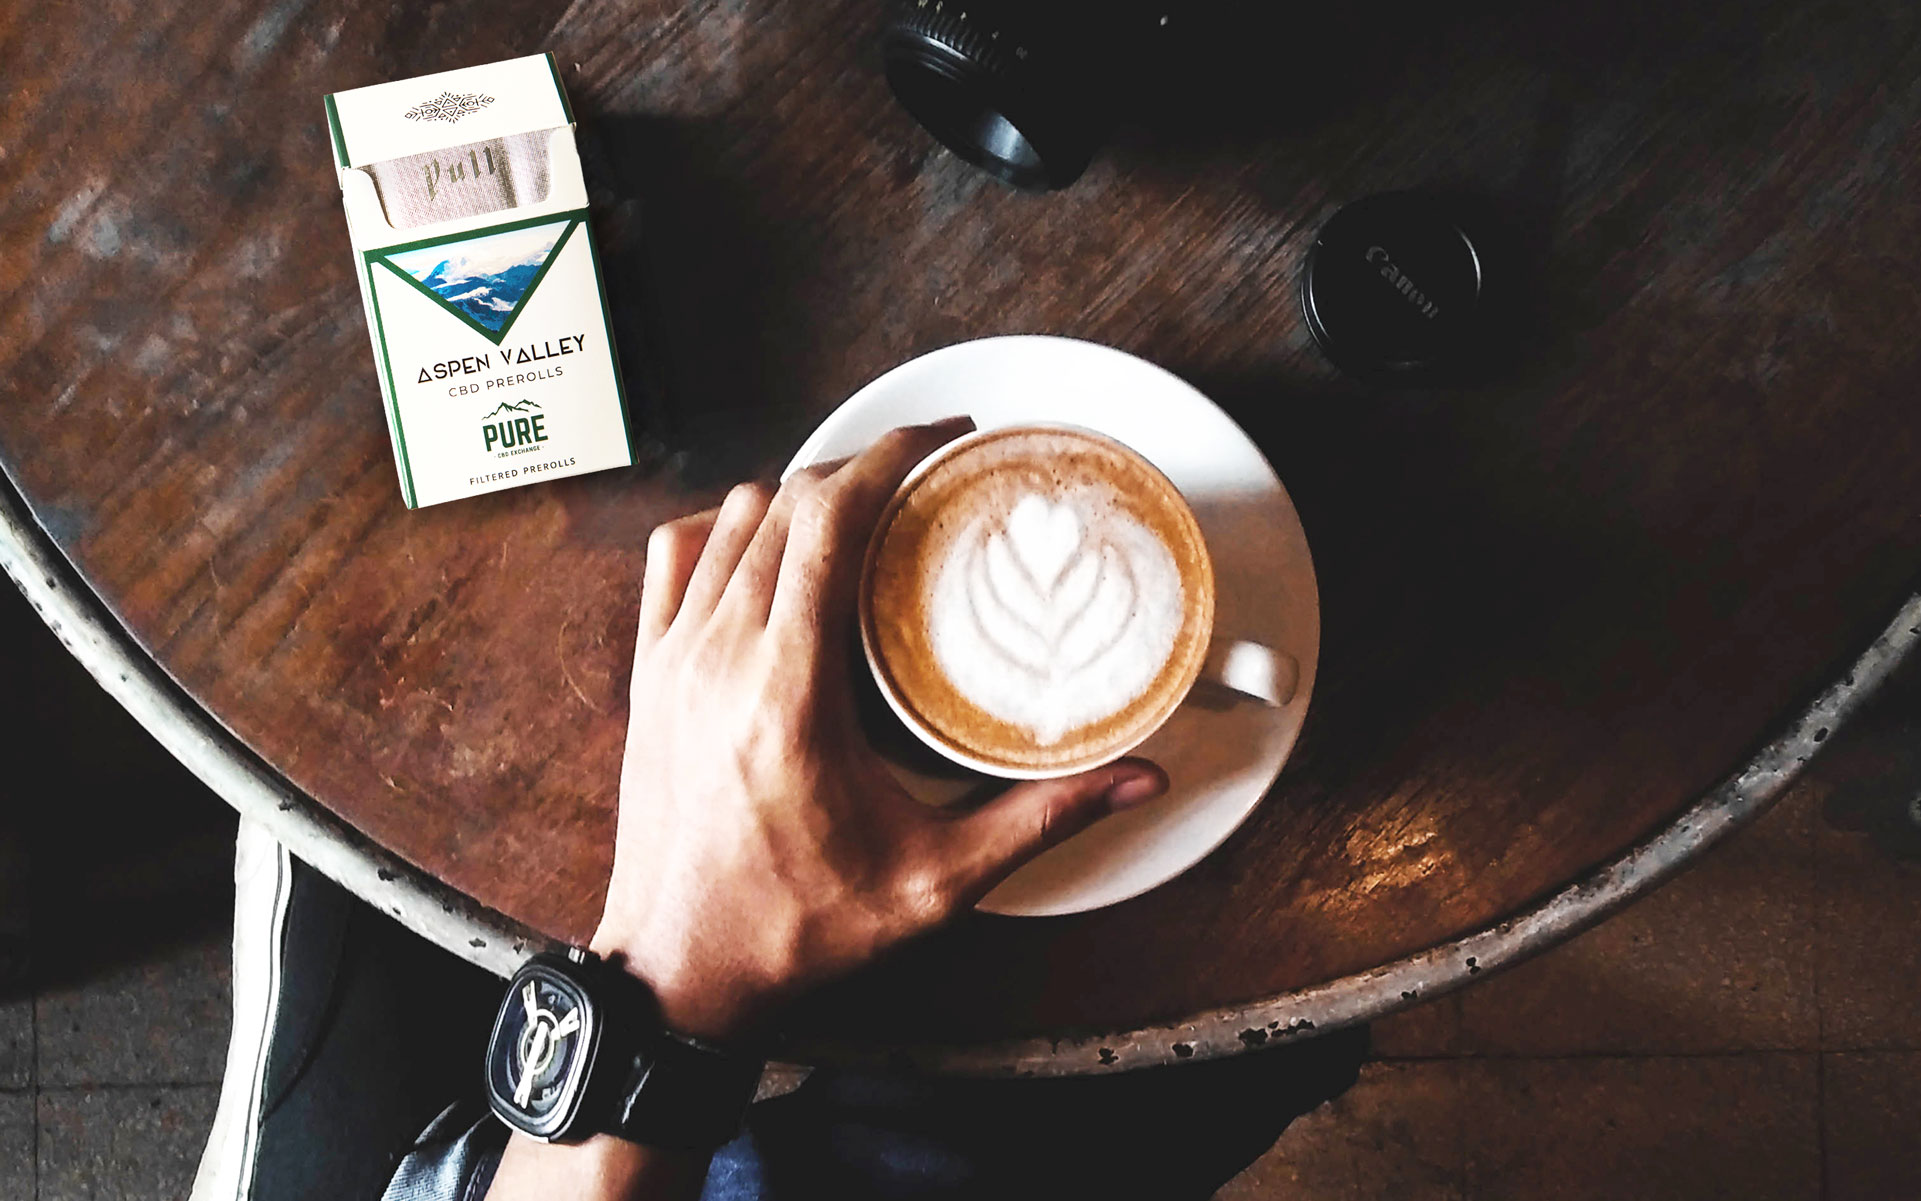 CBD hemp cigarettes and coffee